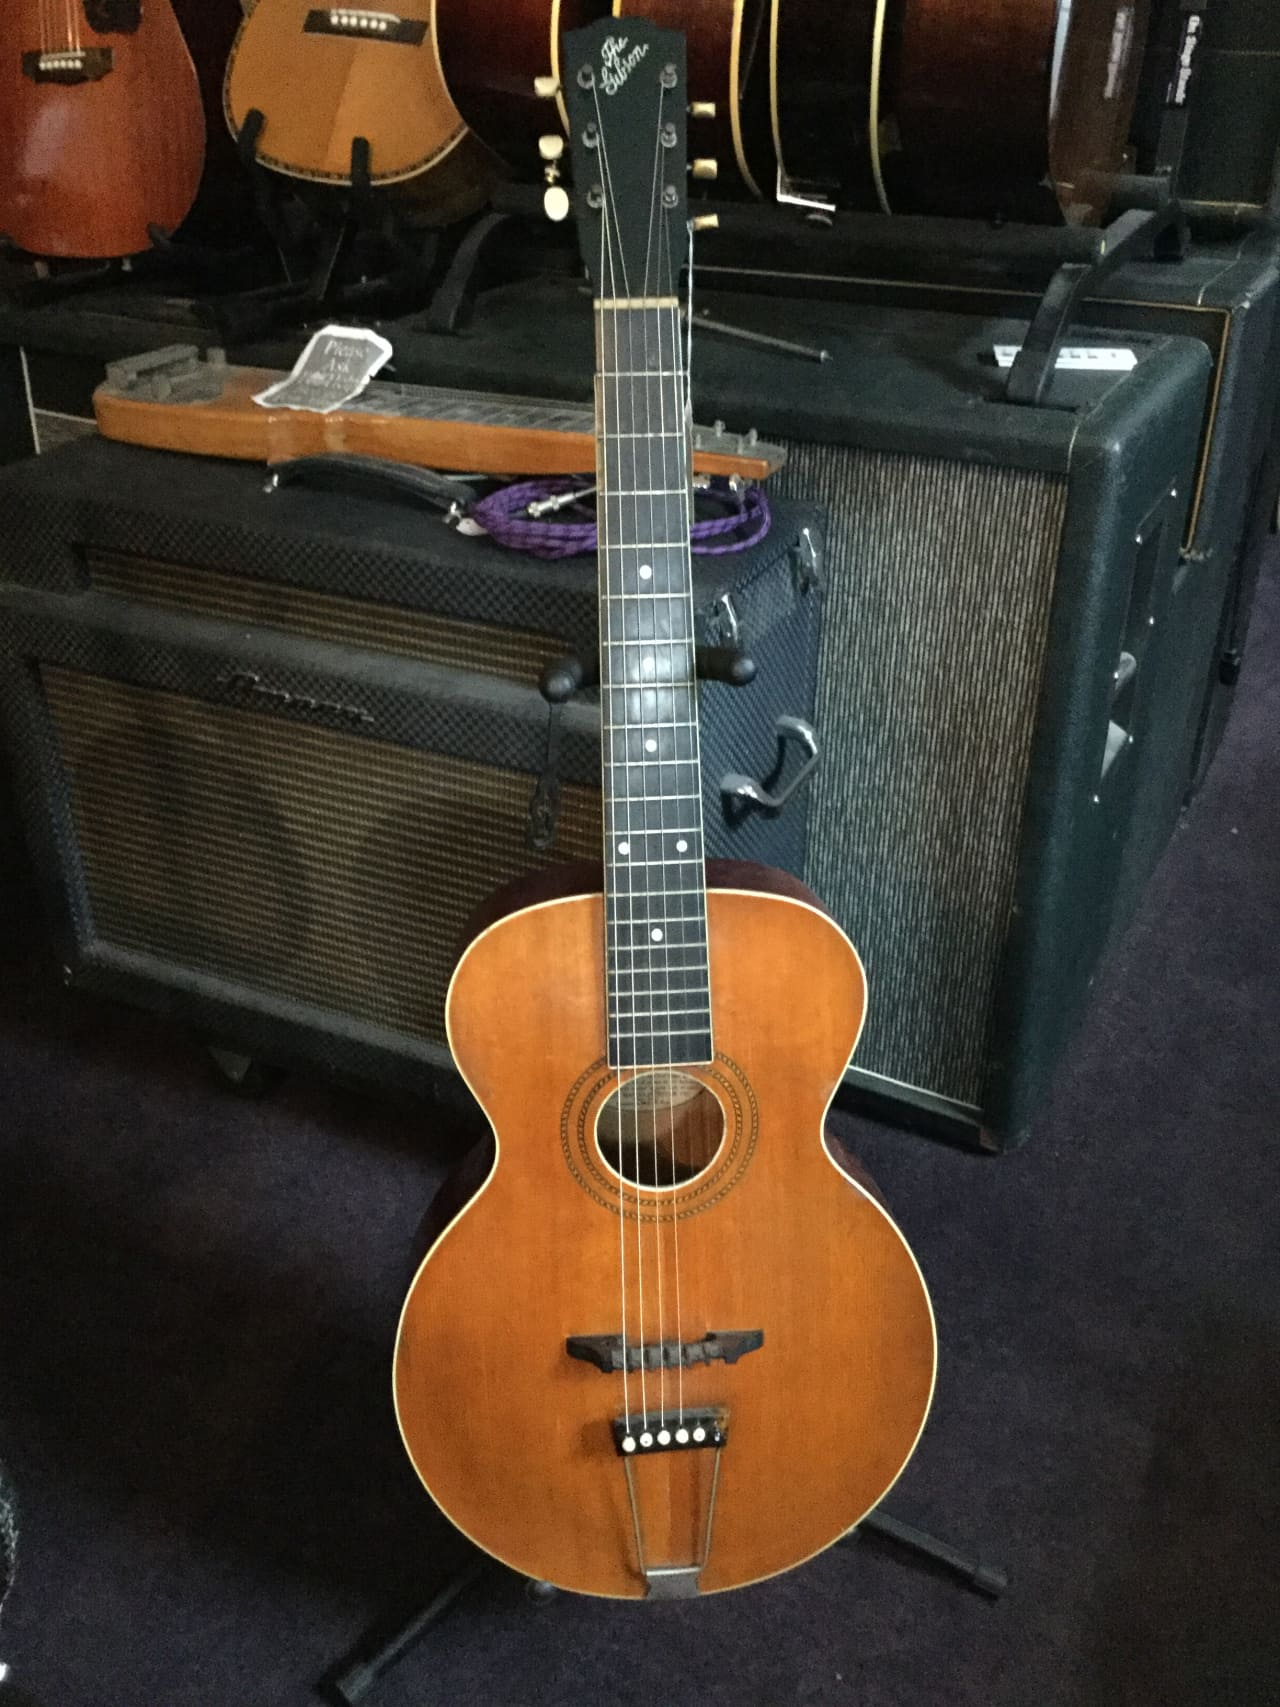 1918 Gibson L-1 Archtop Acoustic Guitar 1918 Natural | Reverb